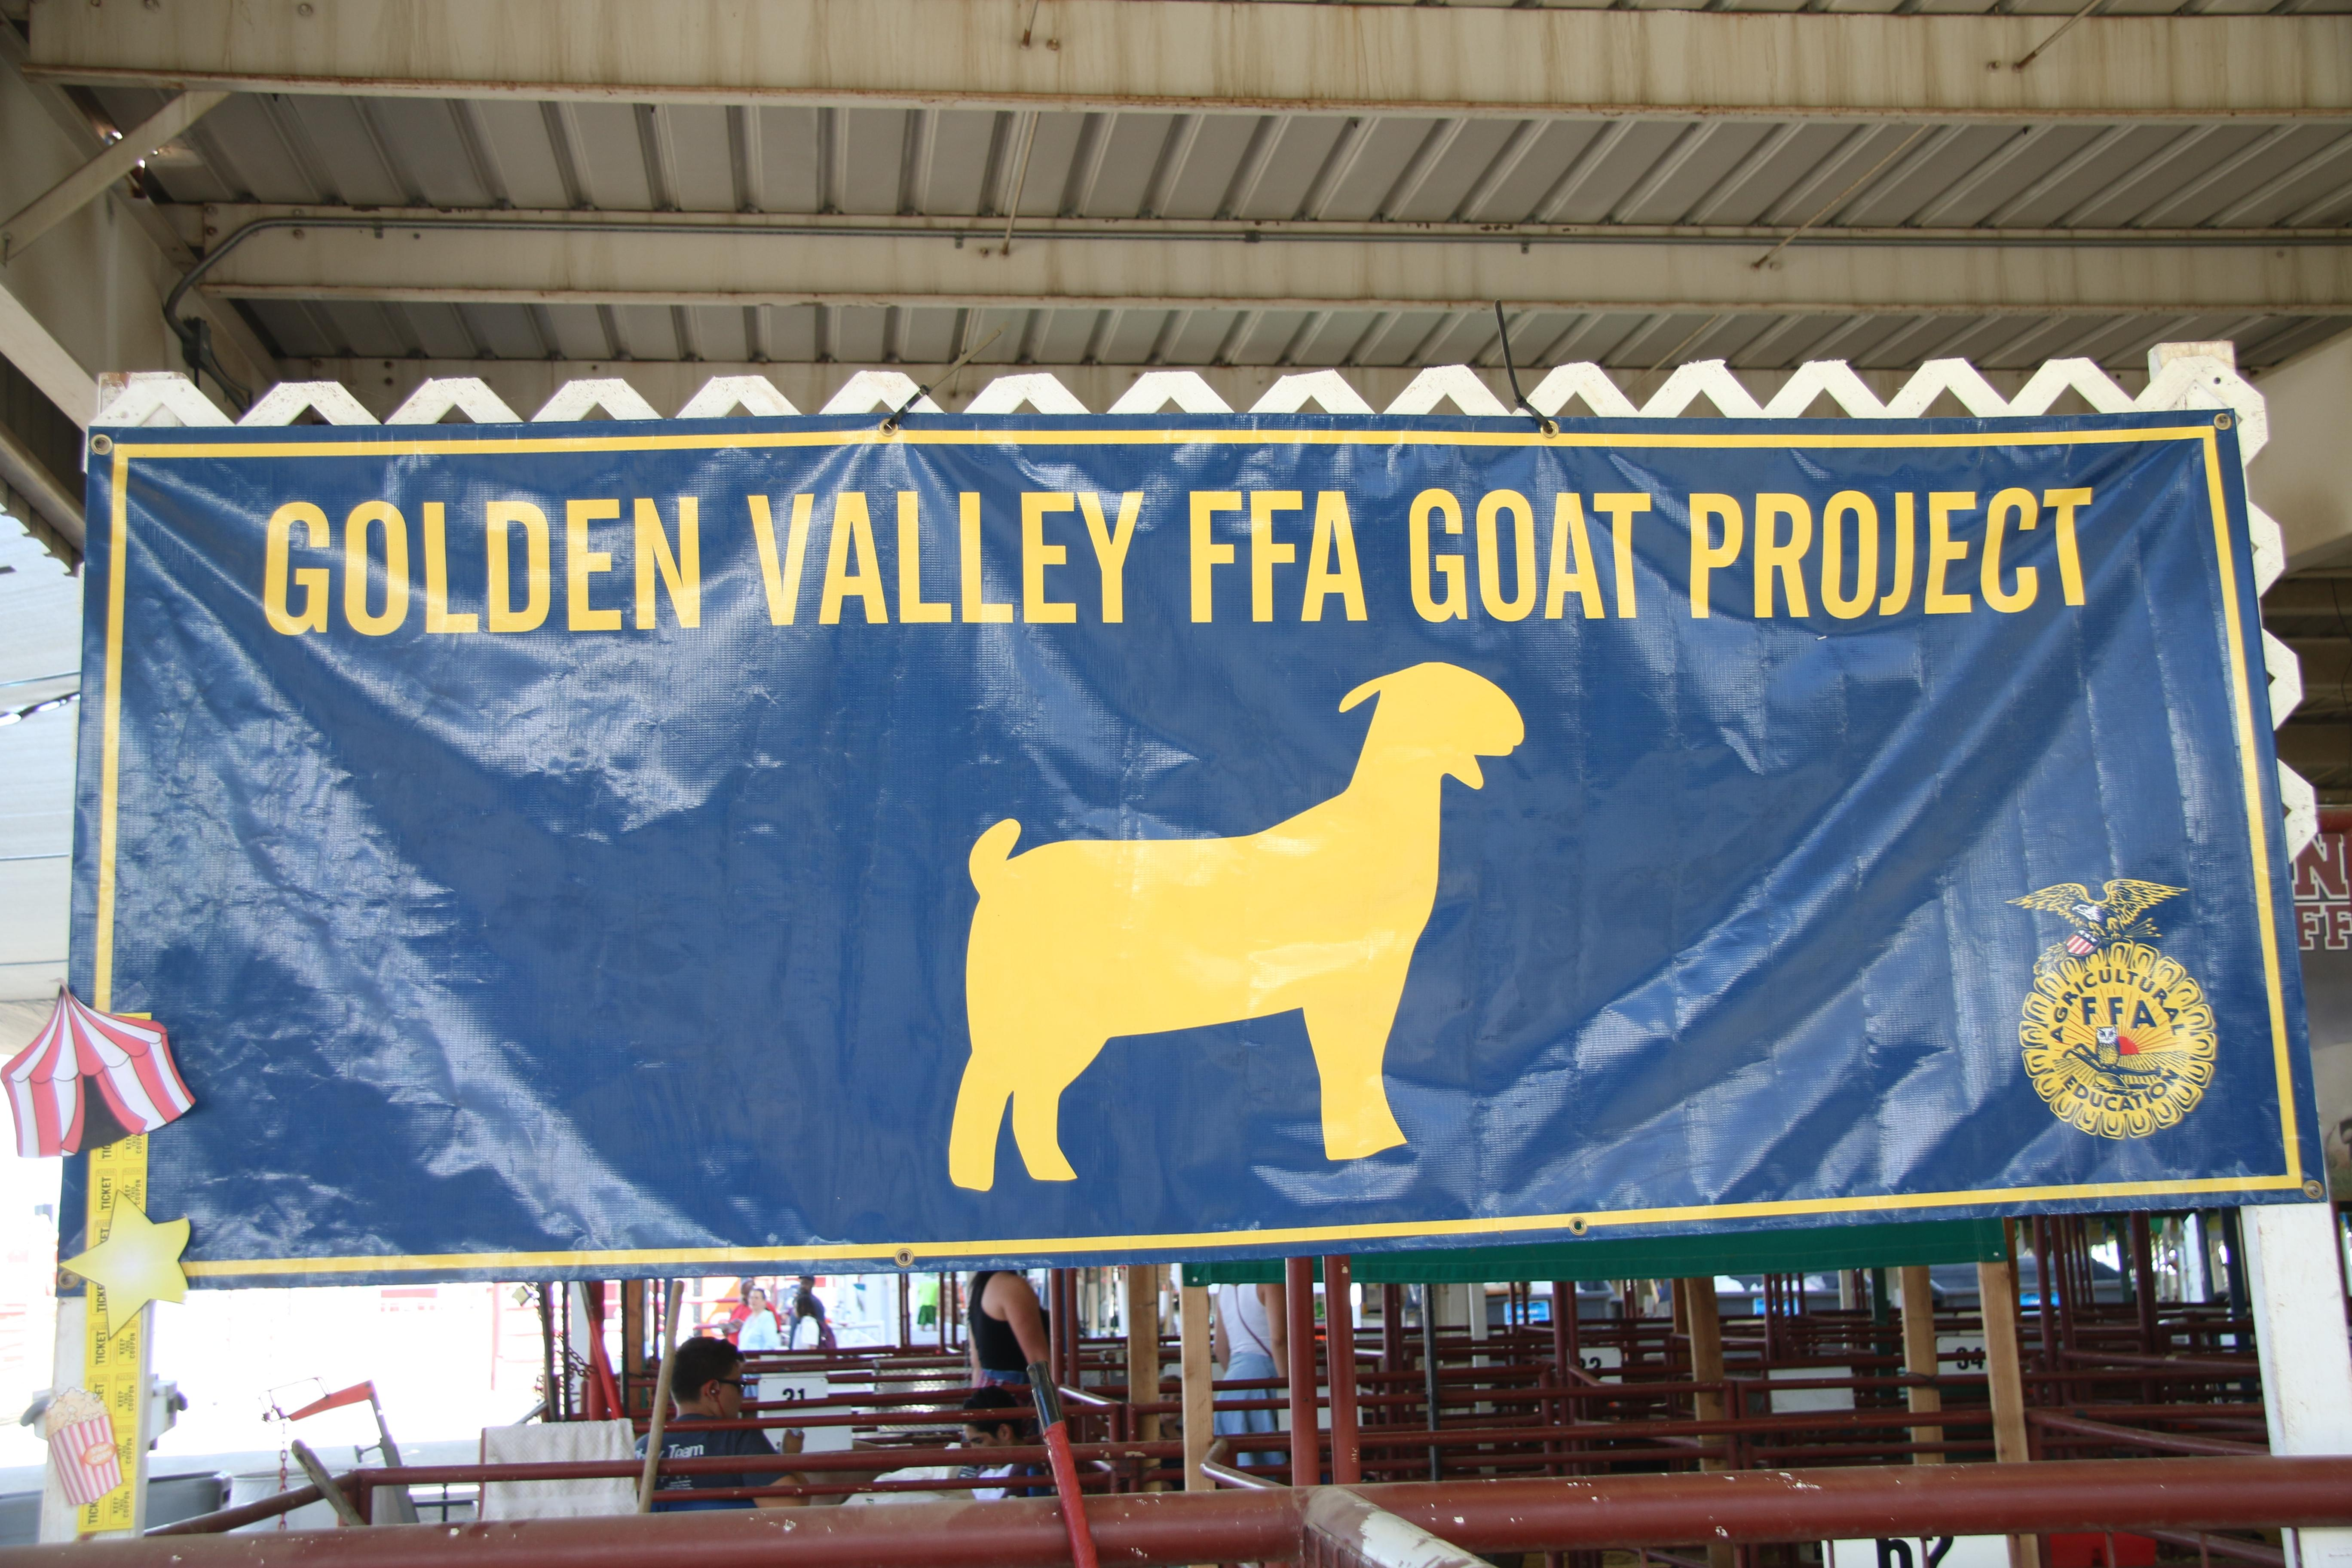 Golden Valley FFA sign